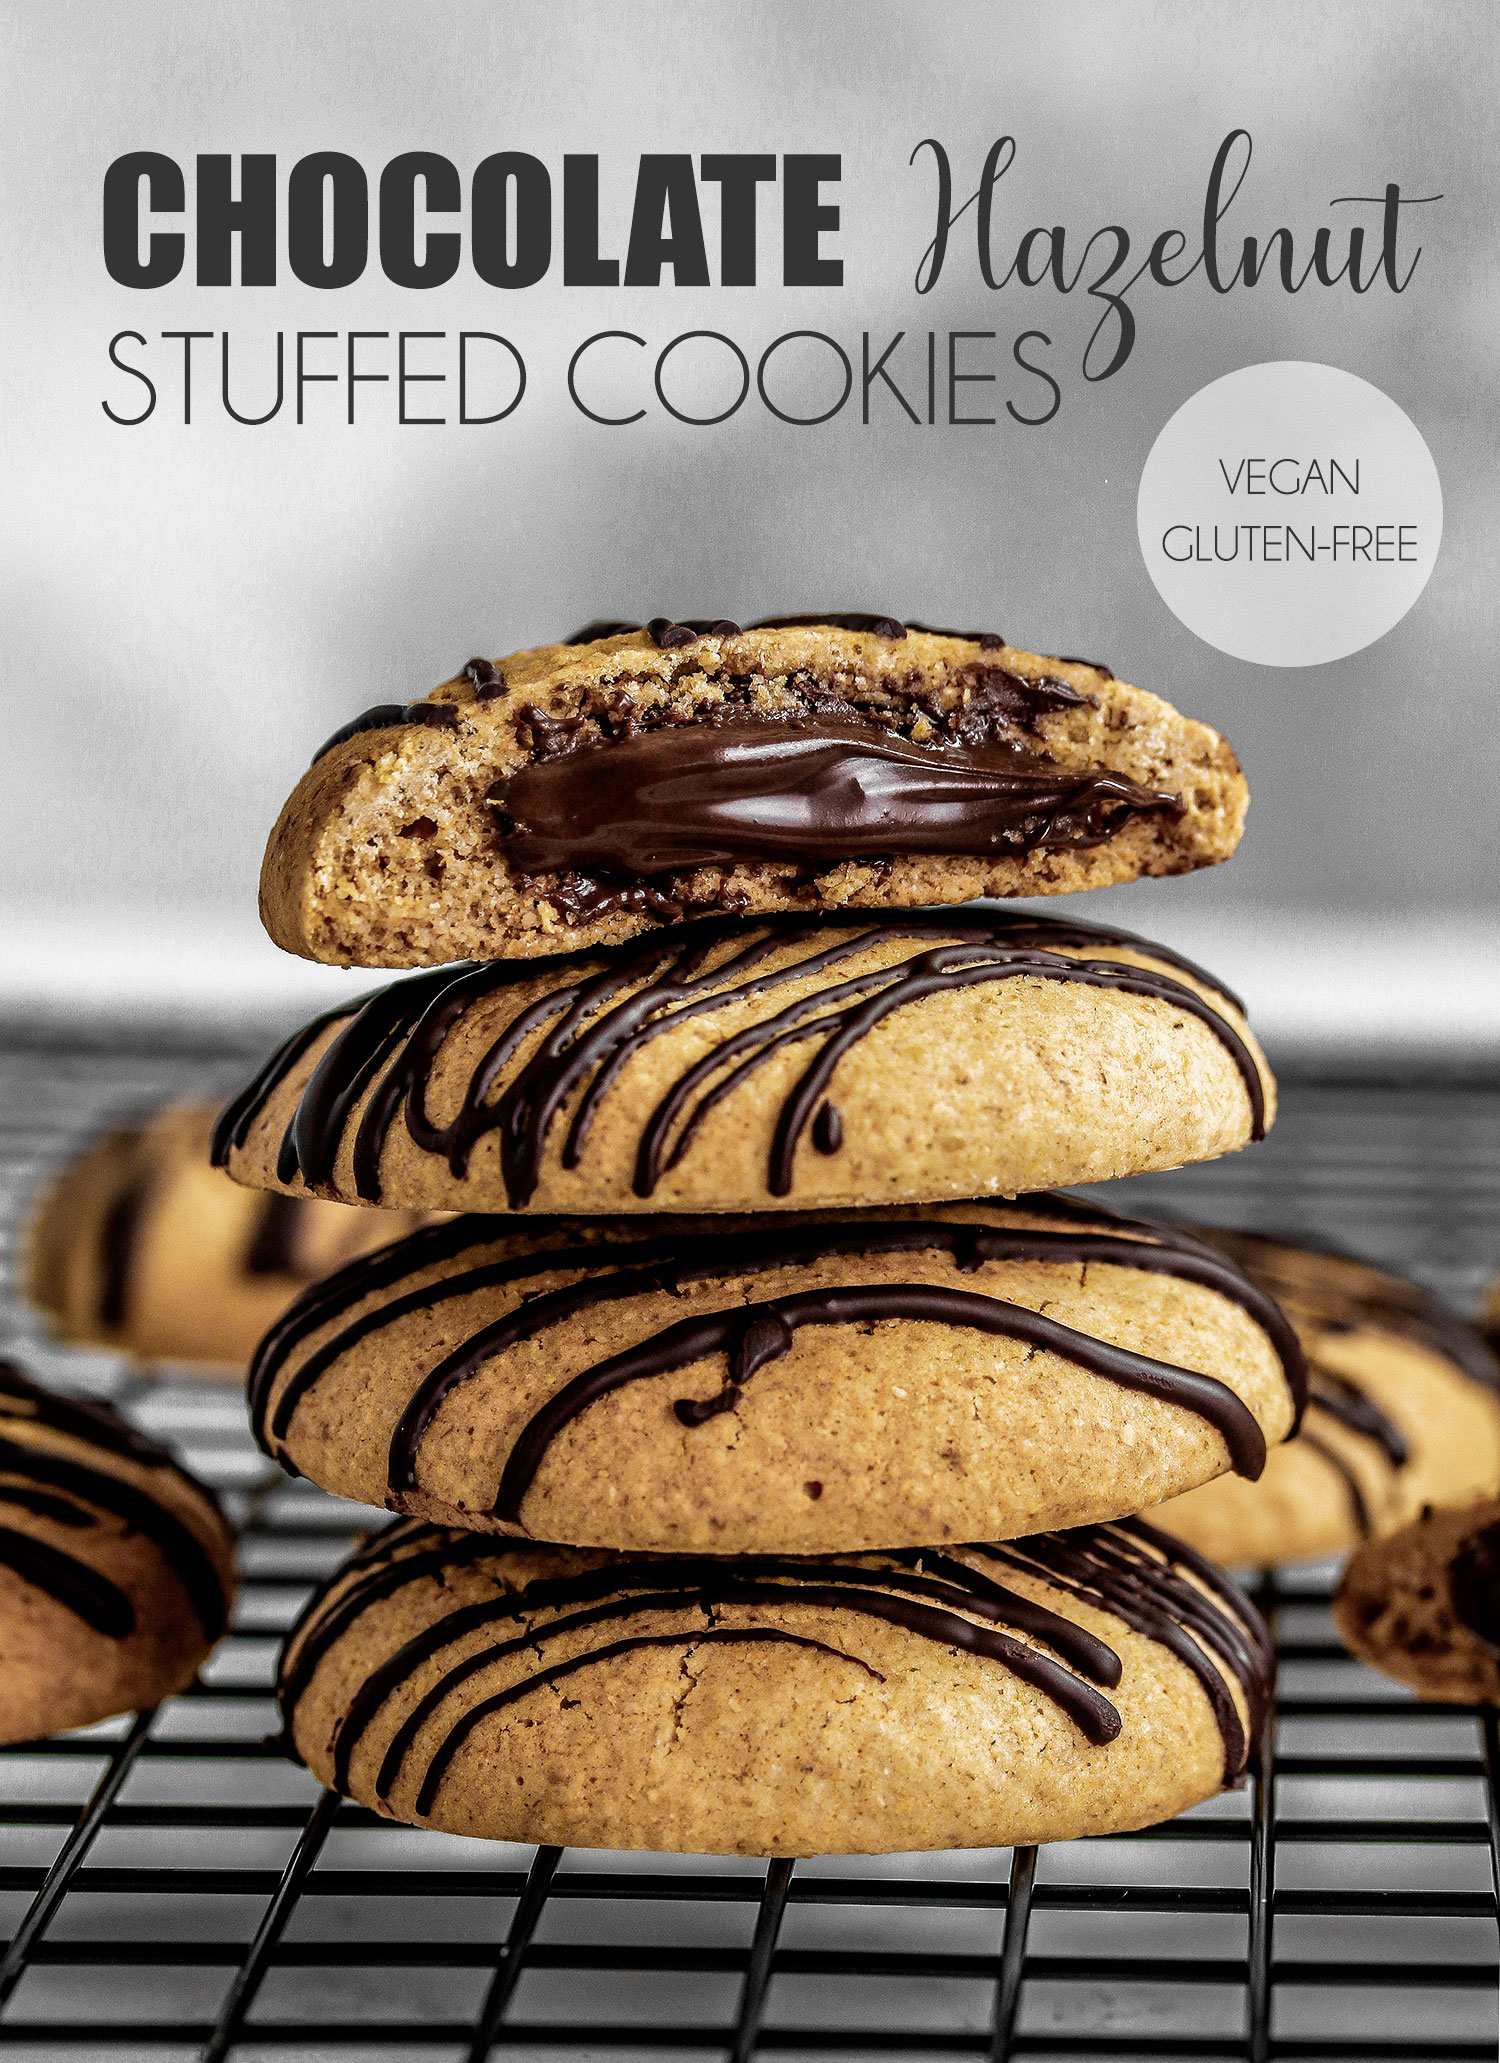 Vegan & Gluten-free Chocolate Hazelnut Stuffed Cookies